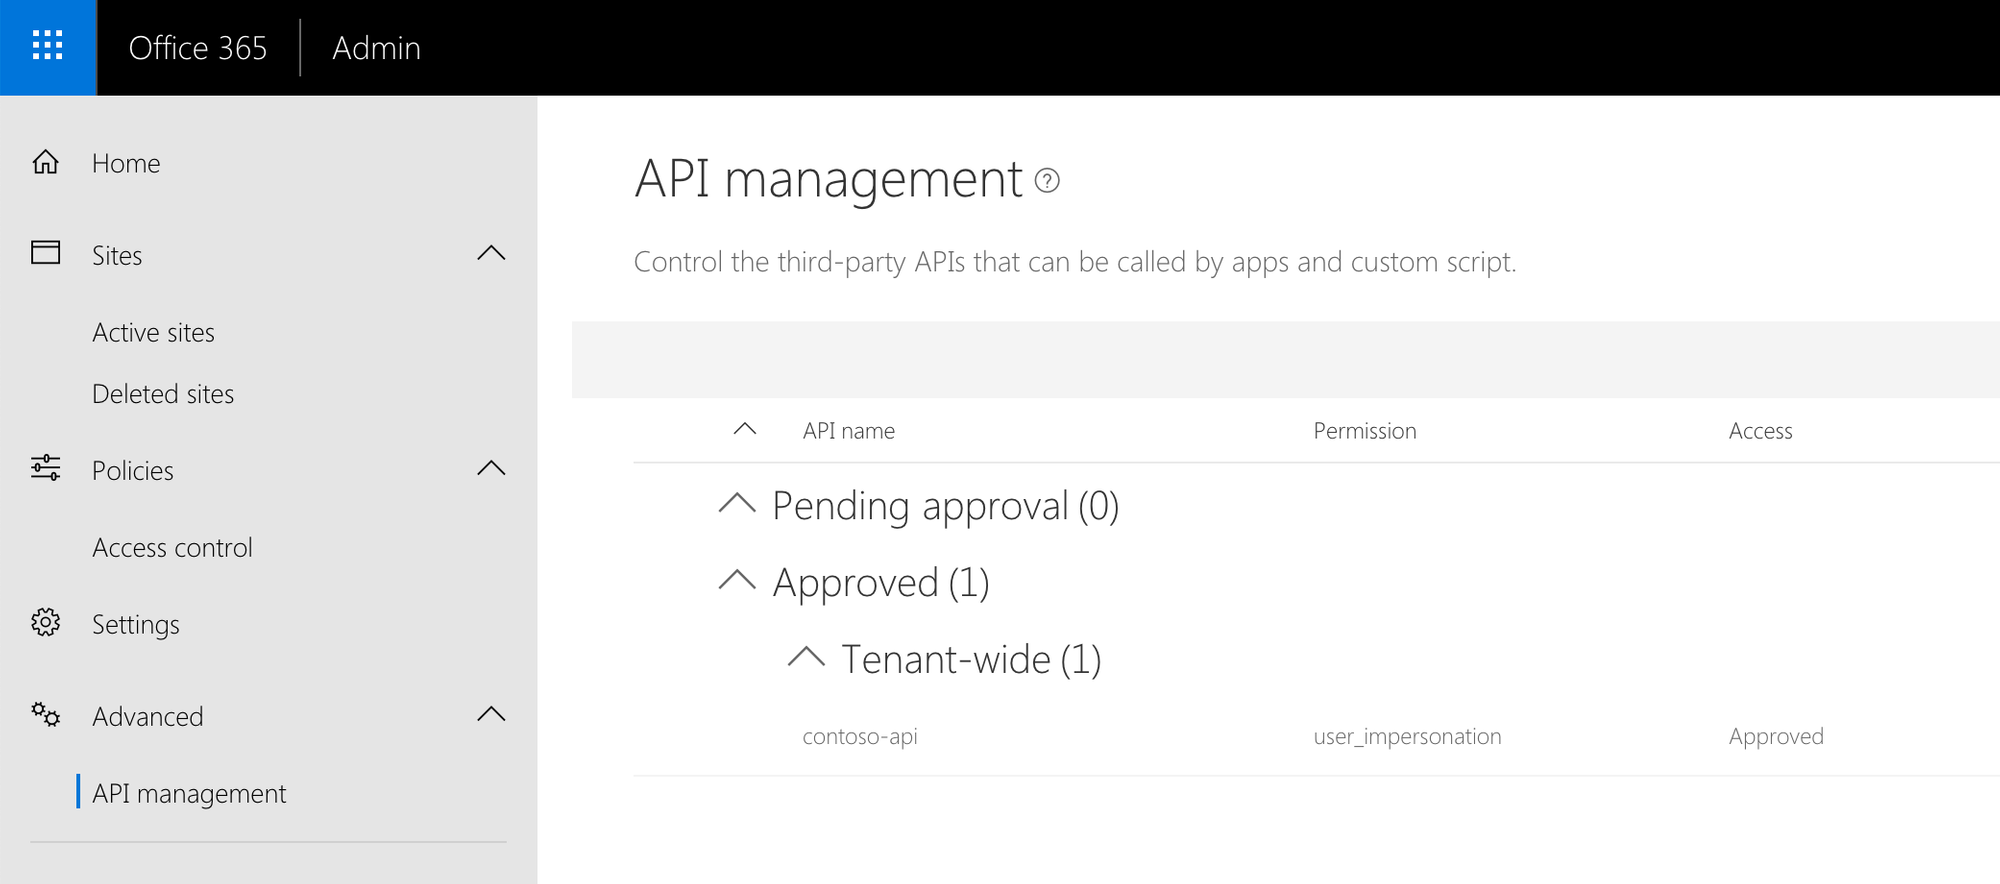 API permission listed among the tenant-wide granted permissions